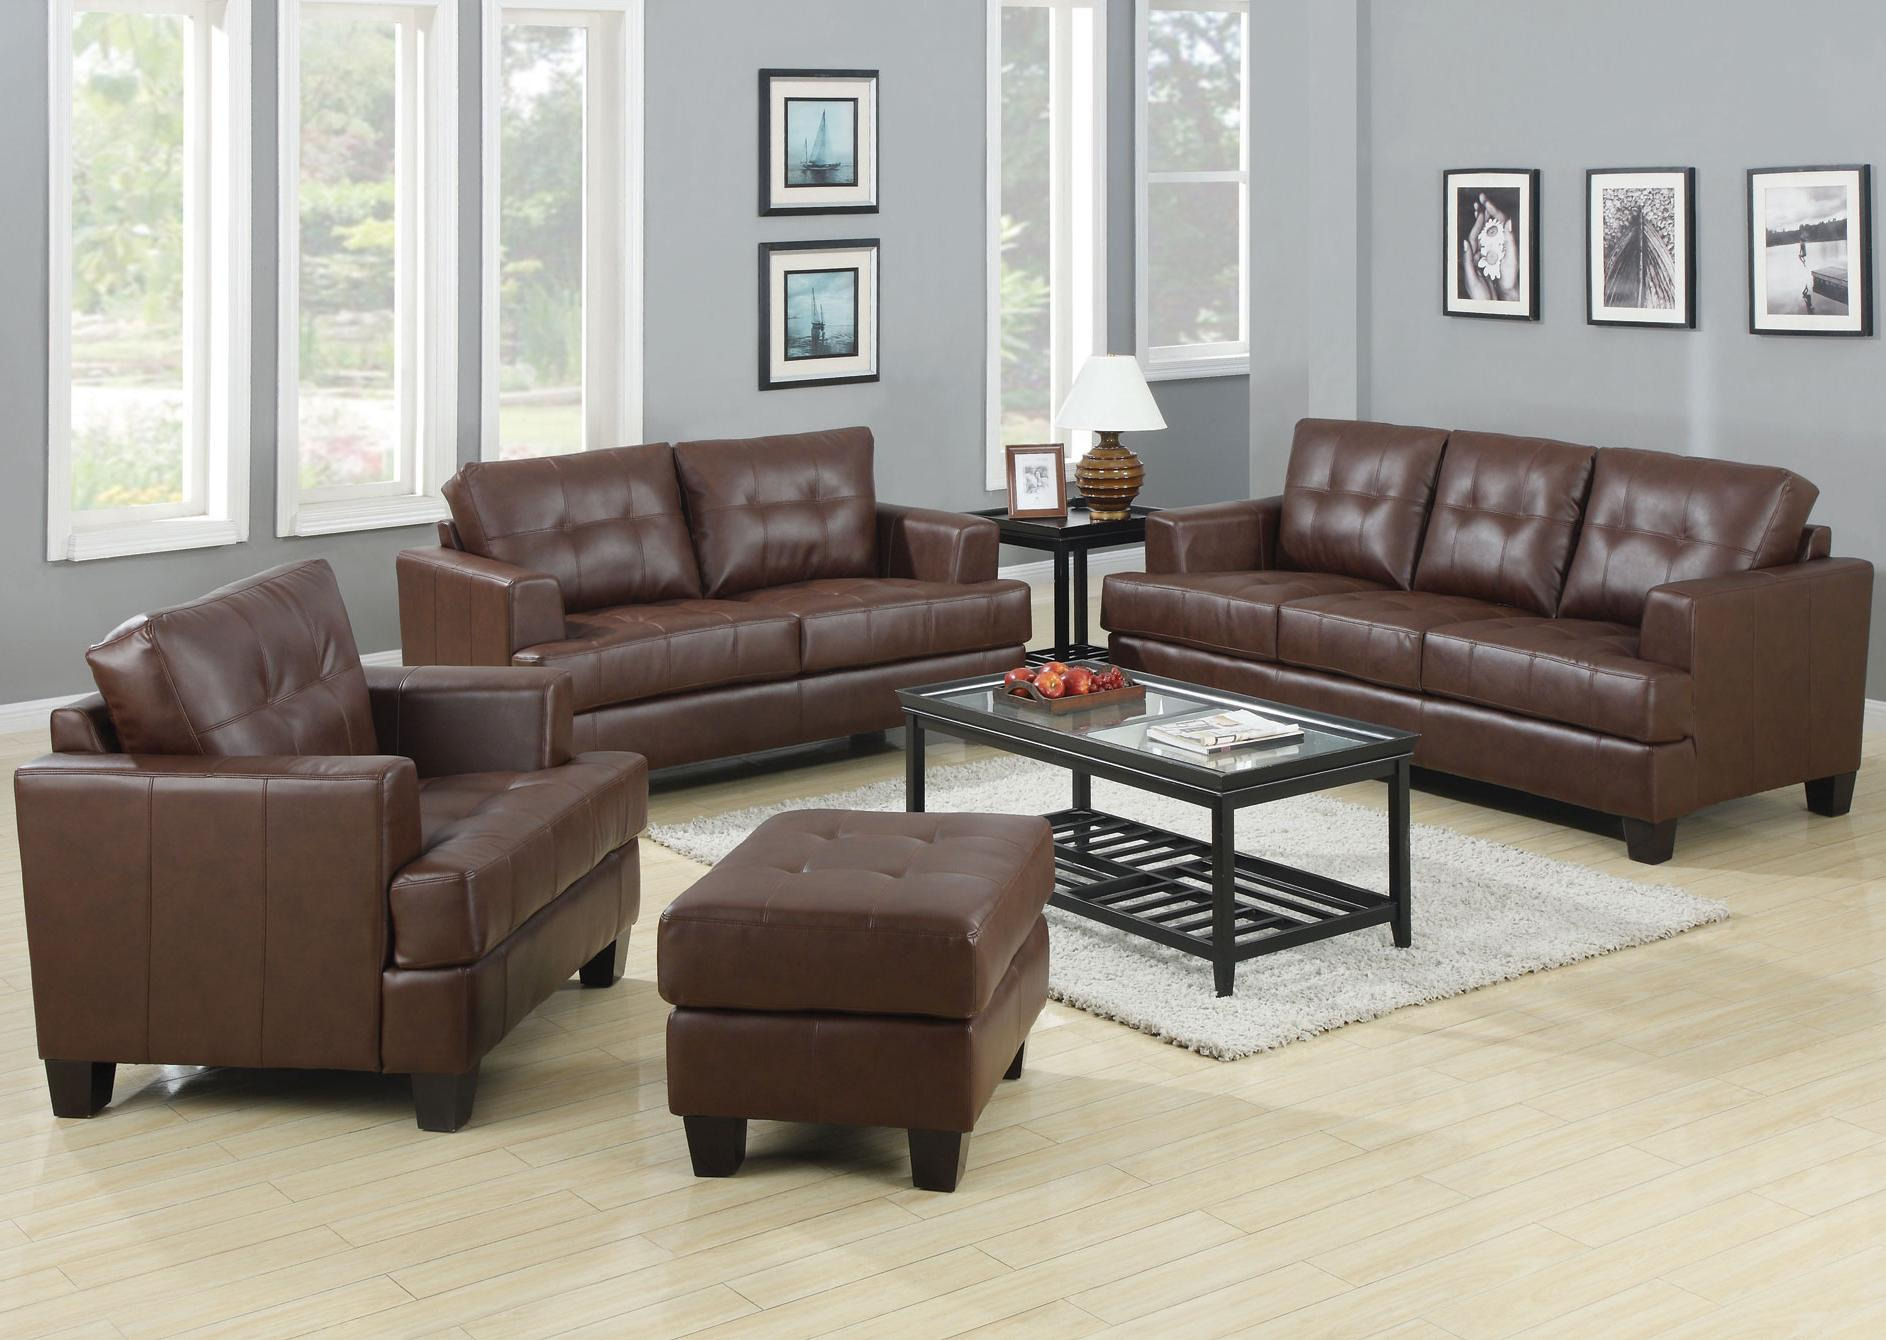 Coaster Samuel Stationary Living Room Group - Item Number: Dark Brown Living Room Group 2